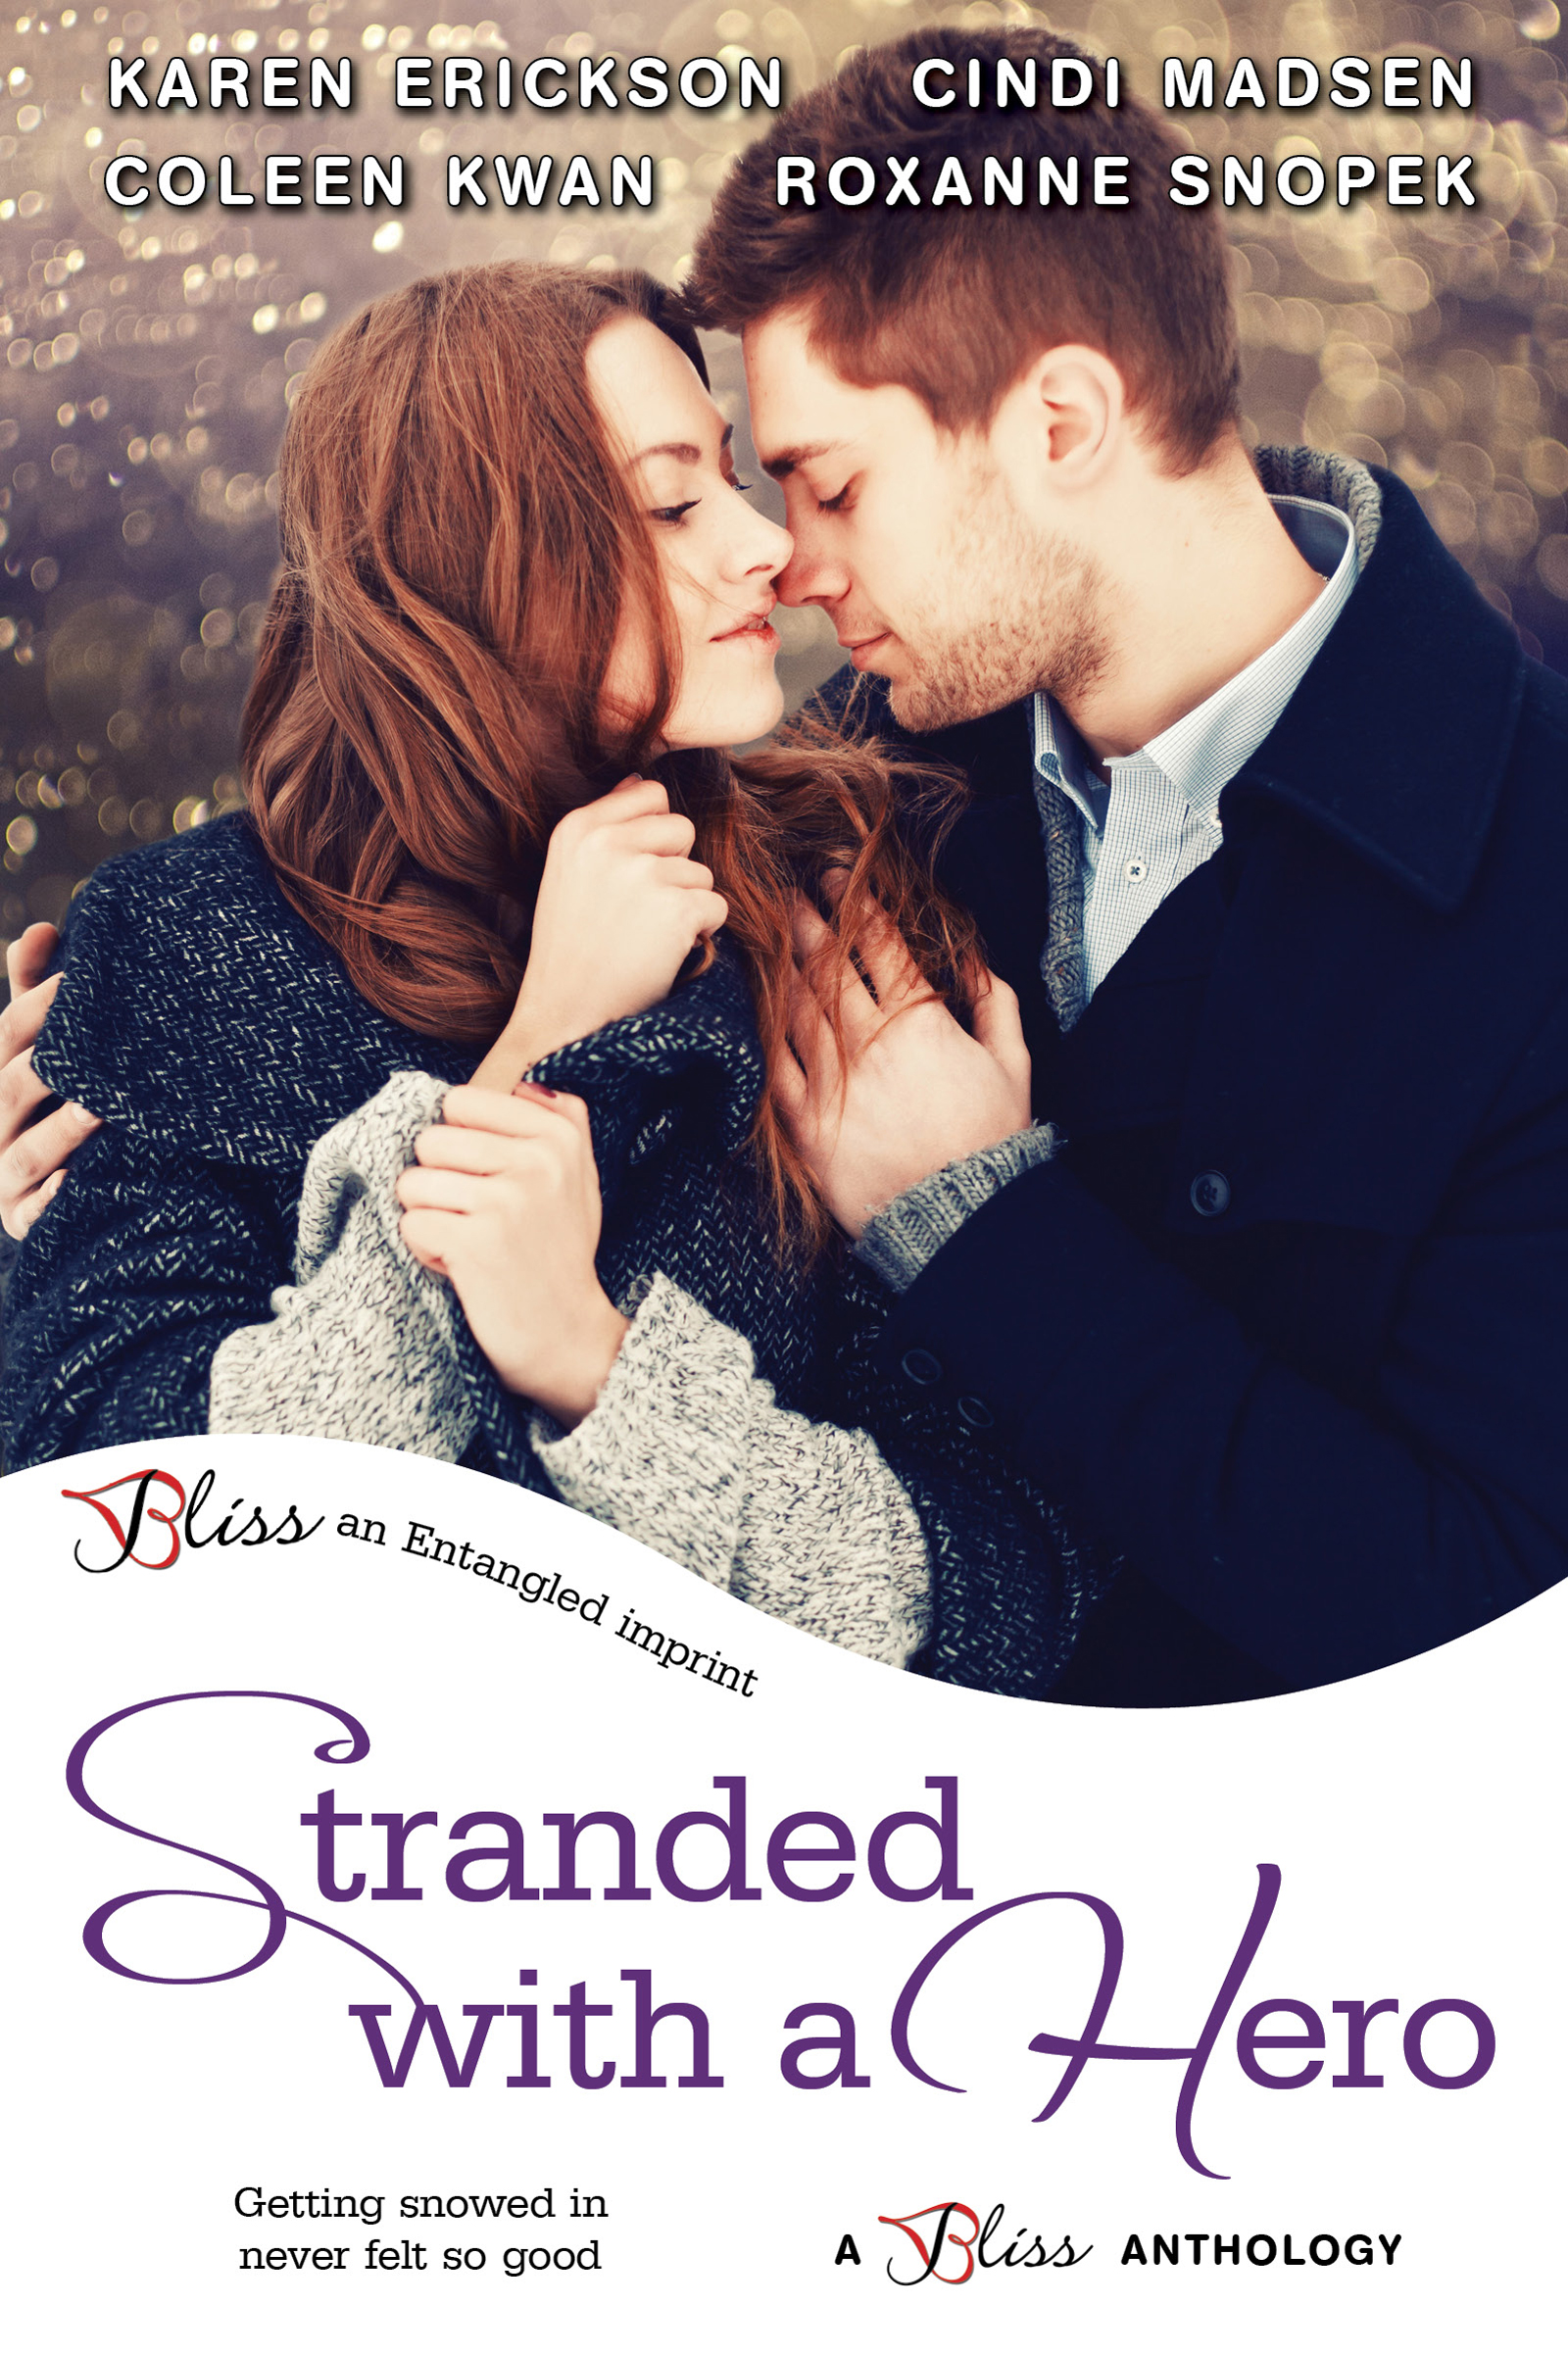 Stranded With A Hero - Lone Pine Lake, Book 3Amazon •B&N •iBooks •Kobo • BAM •GooglePlayGetting snowed in never felt so good as boundaries are crossed, opposites attract, and friends discovering more promise a Christmas no one will ever forget.Loving Mindyby Karen EricksonMindy can't believe she's stuck with her ex–best friend—and the man whose heart she broke years ago—for the holidays, though the tension between them is more than enough to keep them warm. Josh Powers never forgot Mindy, but he can't risk his heart a second time.White-Hot Holidayby Coleen KwanNaomi's sworn off men like Aaron—rich, cocky, and dismissive of holiday traditions. Aaron decided to spend Christmas in sunny Australia to avoid snowy New York, not to fall for the woman his best friend warned him away from. But when a volcano grounds him, Aaron and Naomi's relationship becomes eruptive.An Officer and a Rebelby Cindi MadsenThe last person police officer Nate Walsh expected to discover in a snowstorm is his brother's ex and former town rebel, Kelsey Cooper. She's his complete opposite and totally off-limits, but as they wait out the storm together, all he can think is how he wishes she'd stay forever.Saving the Sheriffby Roxanne SnopekFrankie Sylva was determined to free the captive reindeer, even if it meant risking her own life. Deputy Sheriff Red LeClair set out to save a stranger in a snowstorm, never expecting he'd be the one to be rescued.Amazon •B&N •iBooks •Kobo • BAM •GooglePlay